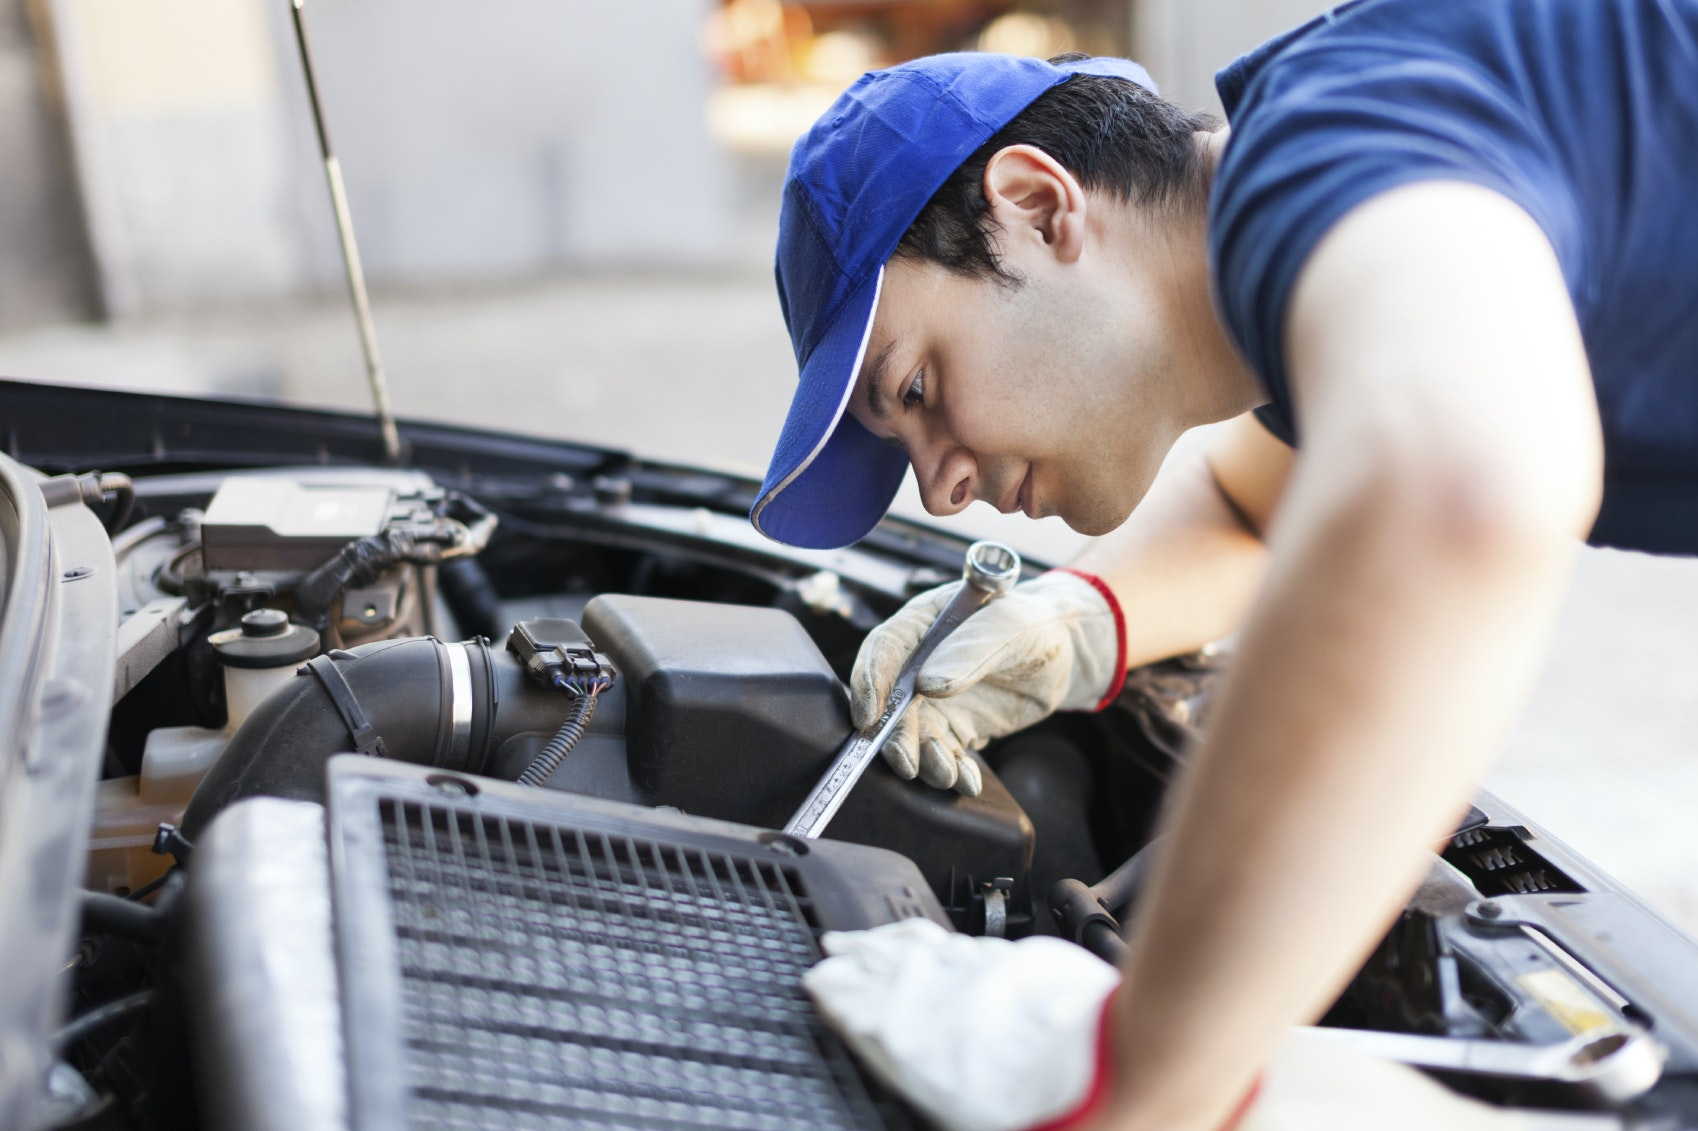 The 5 Best Home Car Maintenance Tools To Own